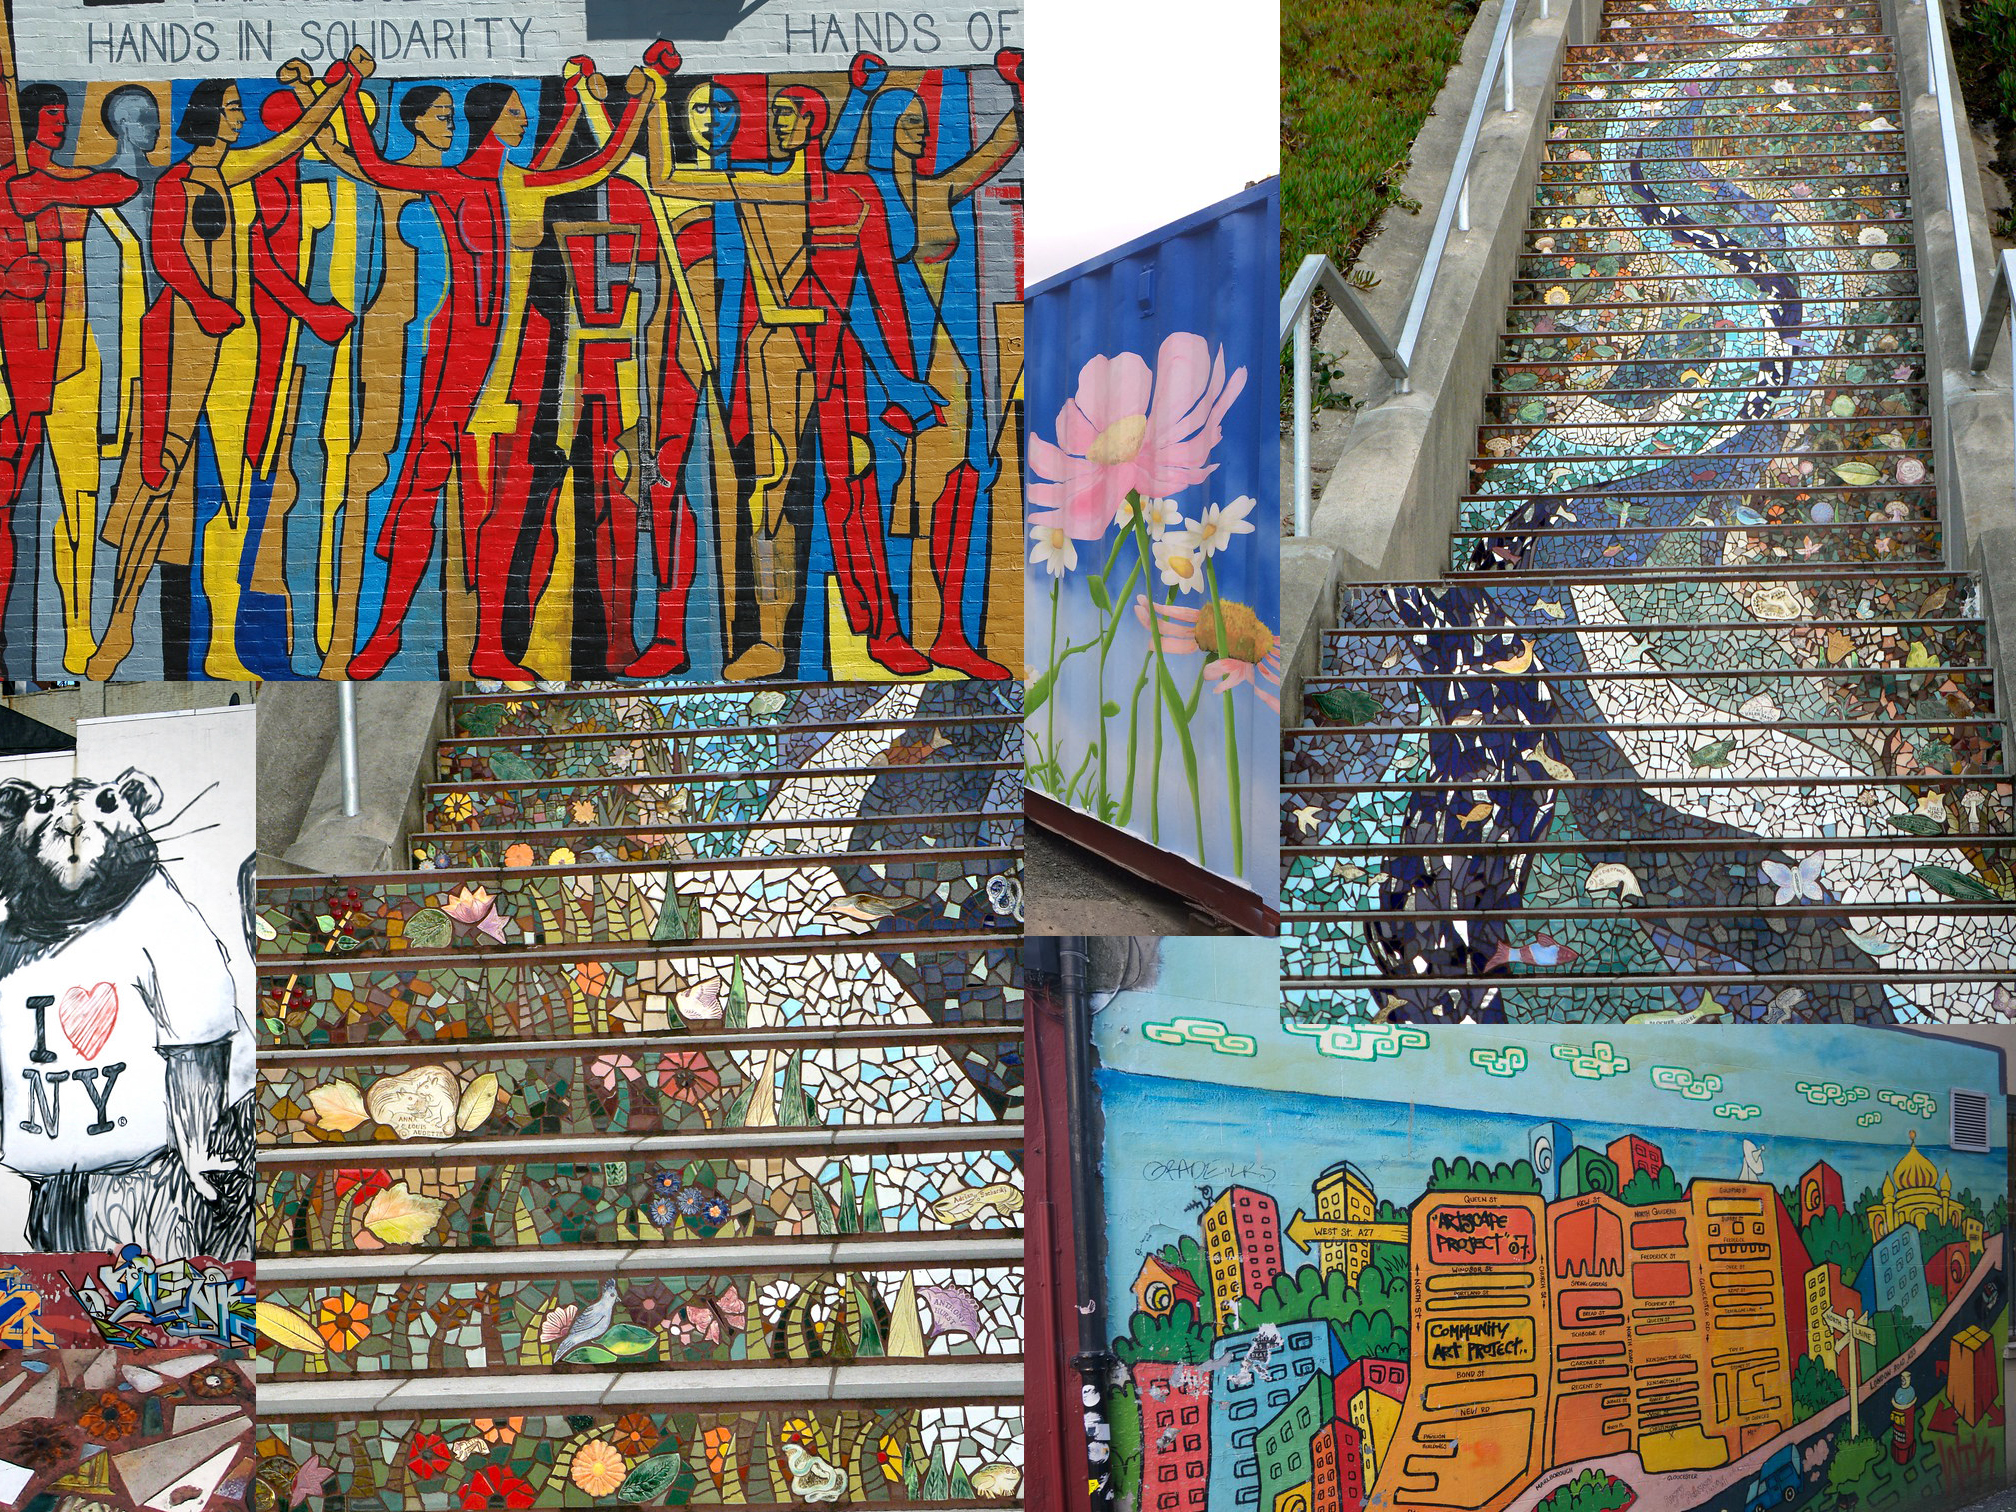 Explore environmentally friendly ways to beautify your community through art!